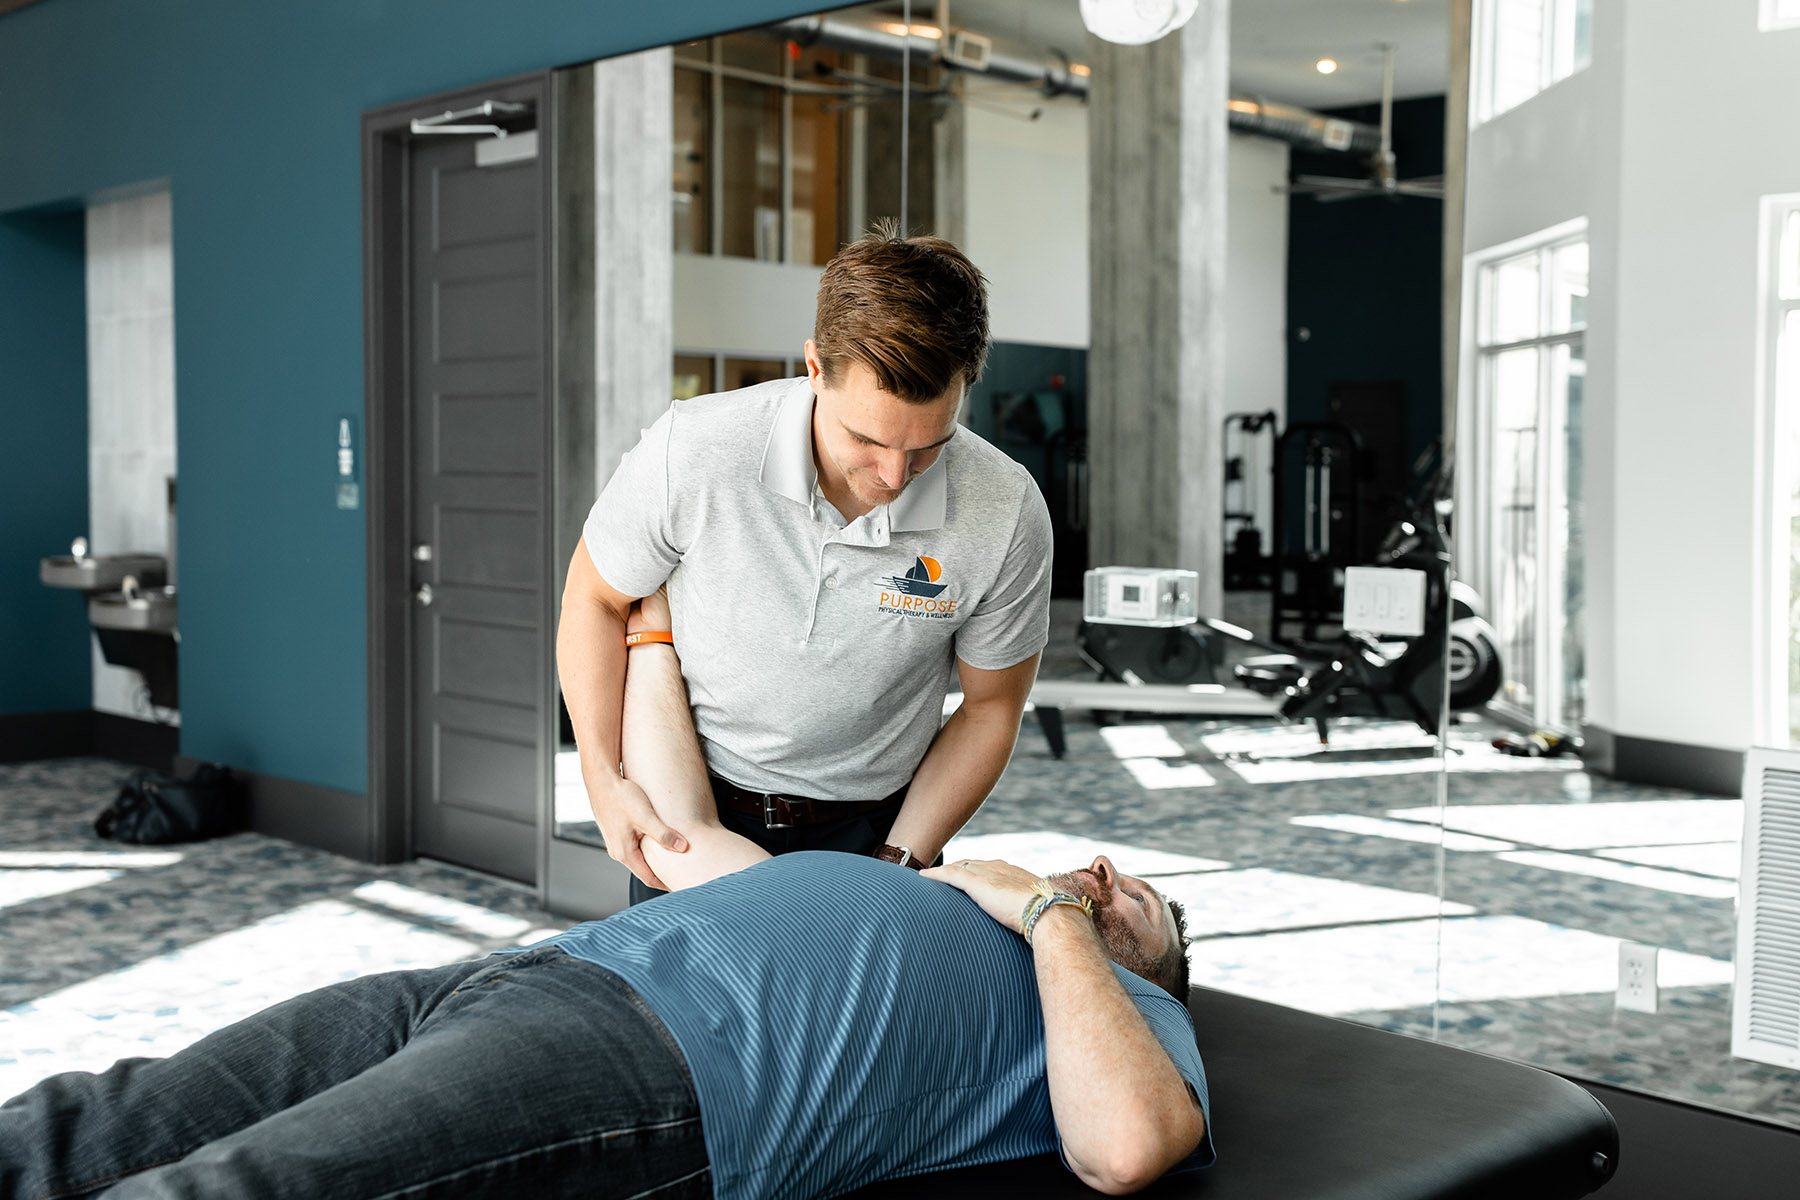 passive and active physical therapy for your neck and shoulders